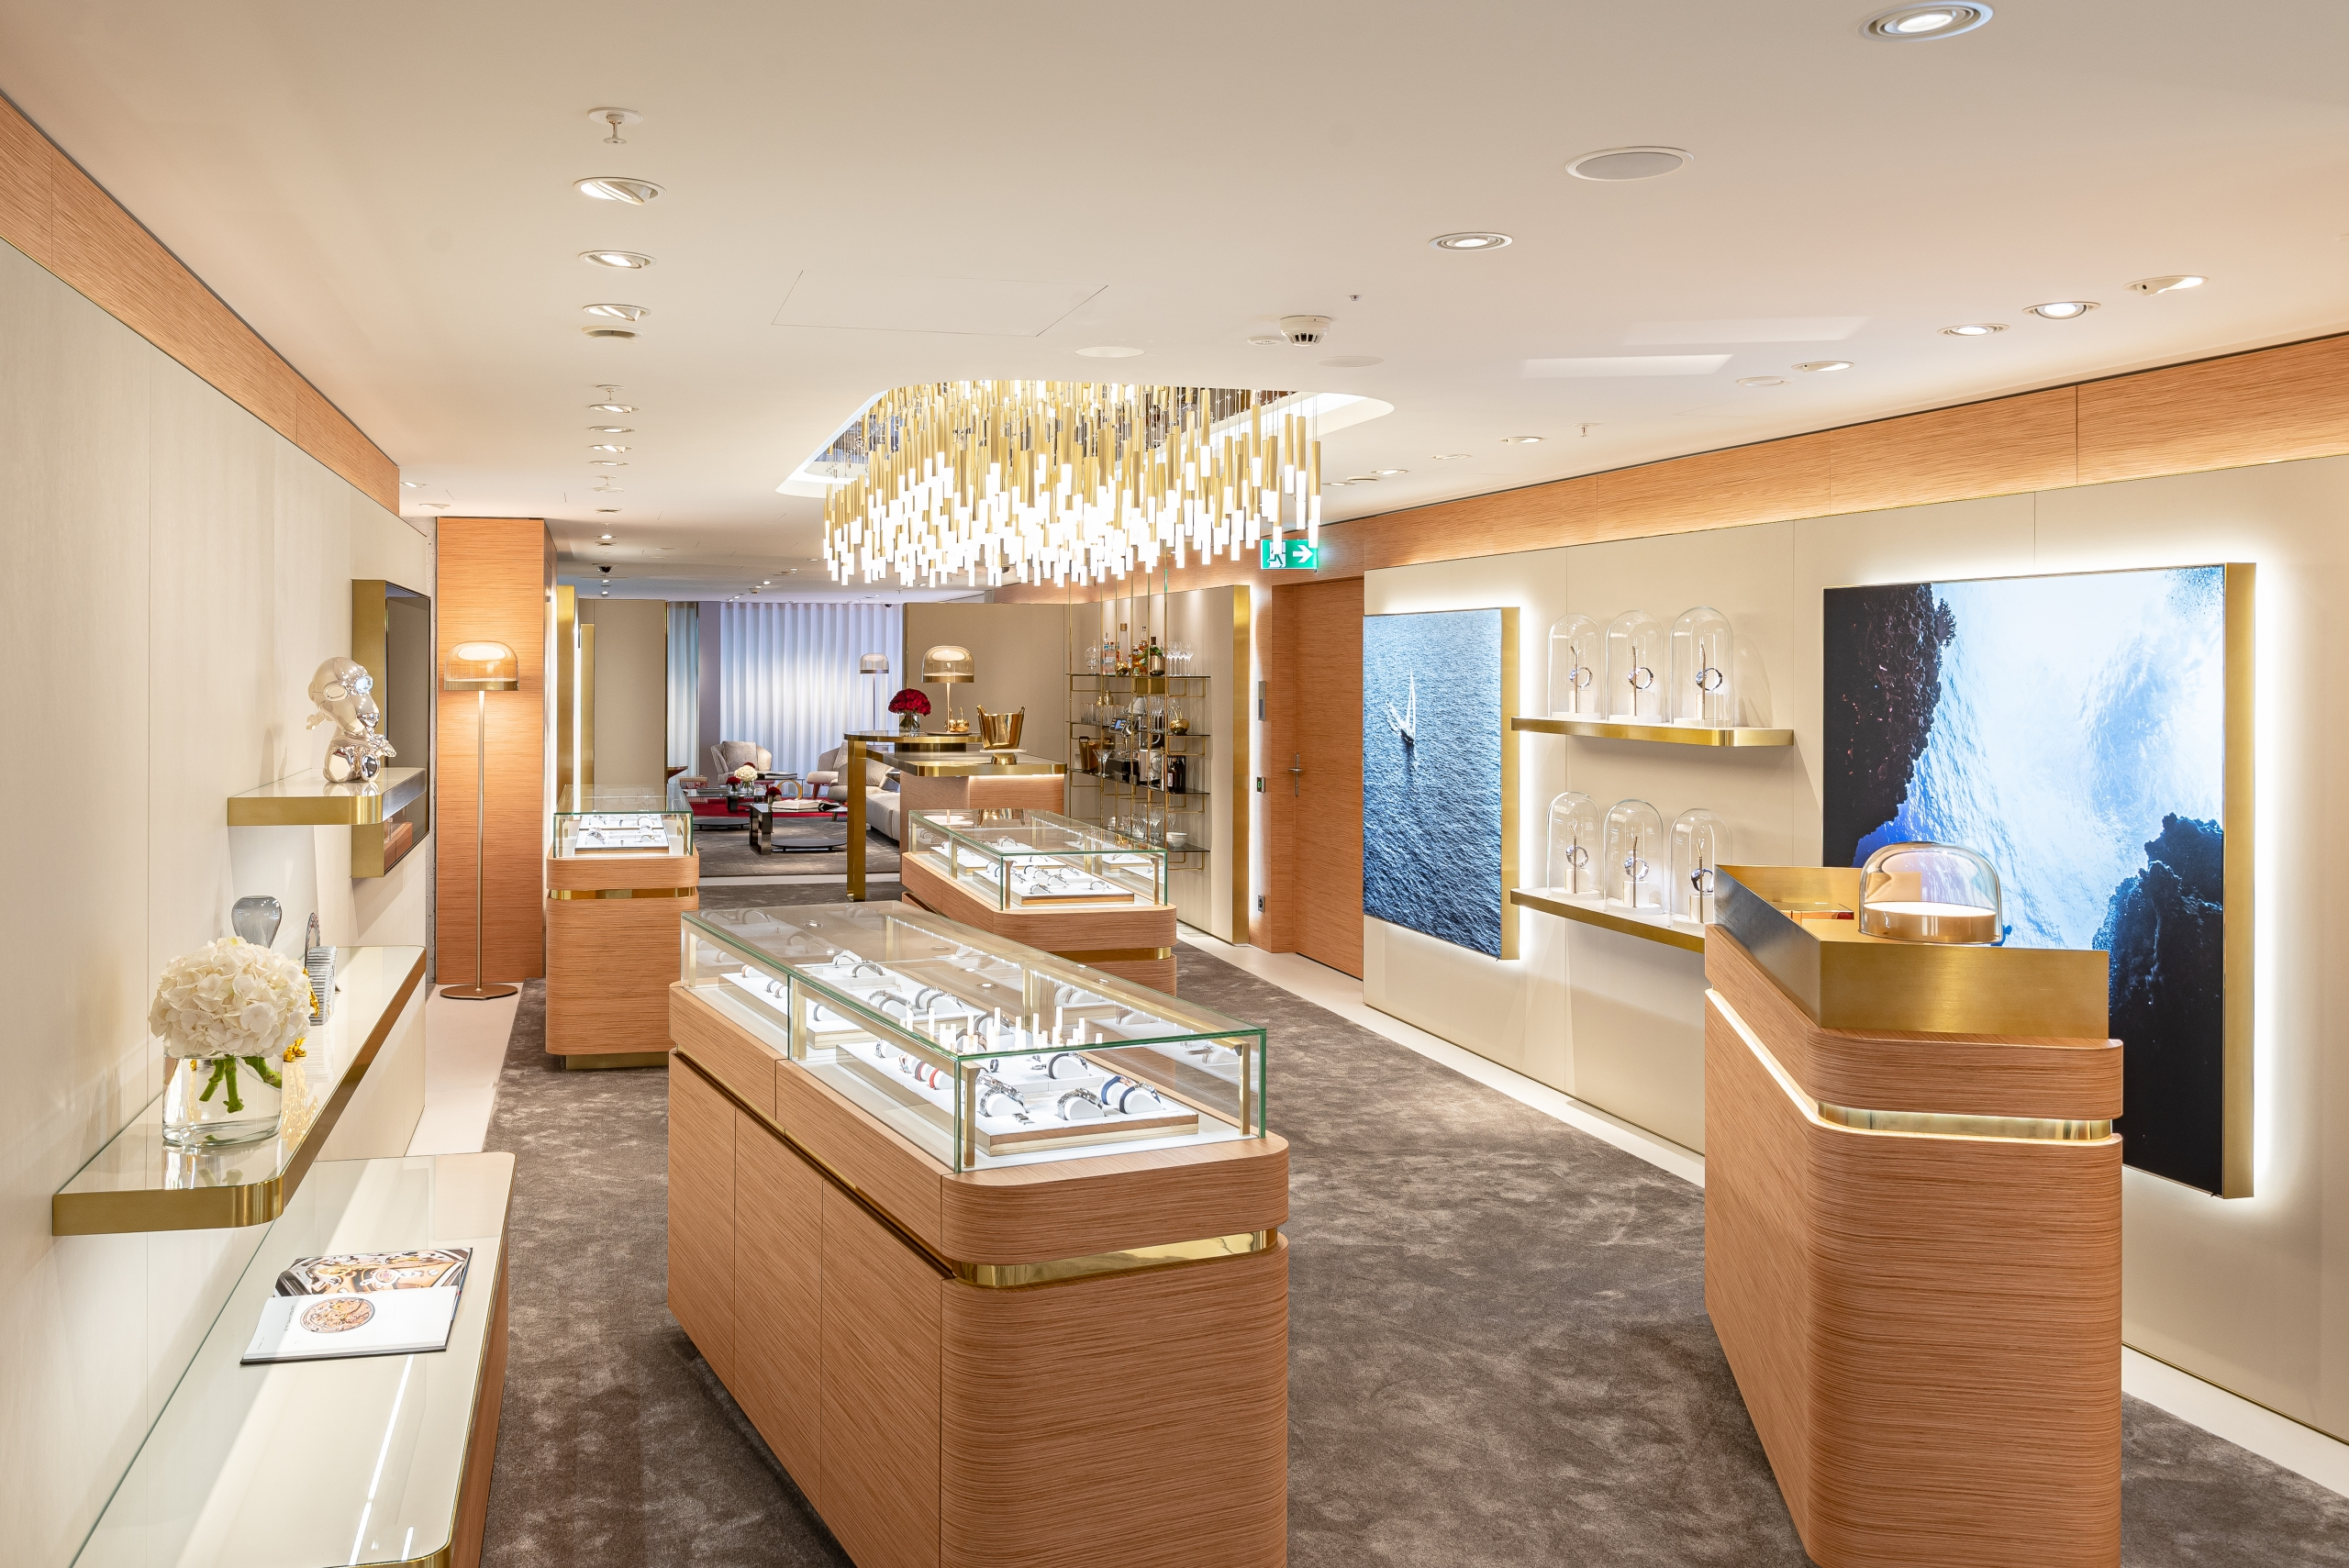 Omega-The-Circle-Zurich-interior-3-scaled.jpg